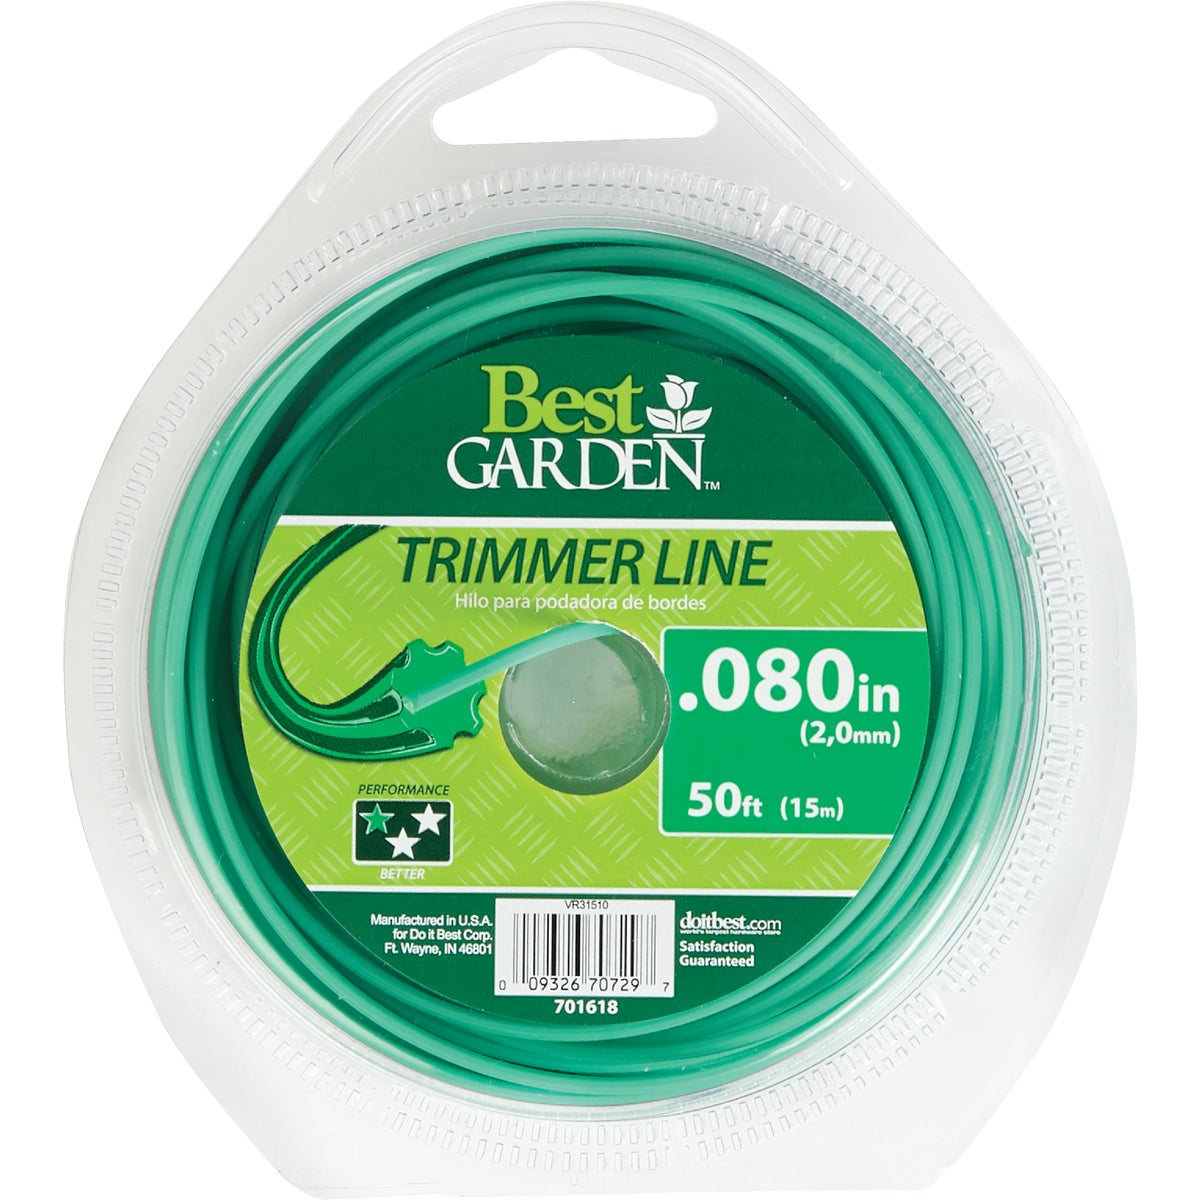 .080 50' TRIMMER LINE - 16249 by Shakespeare Mono